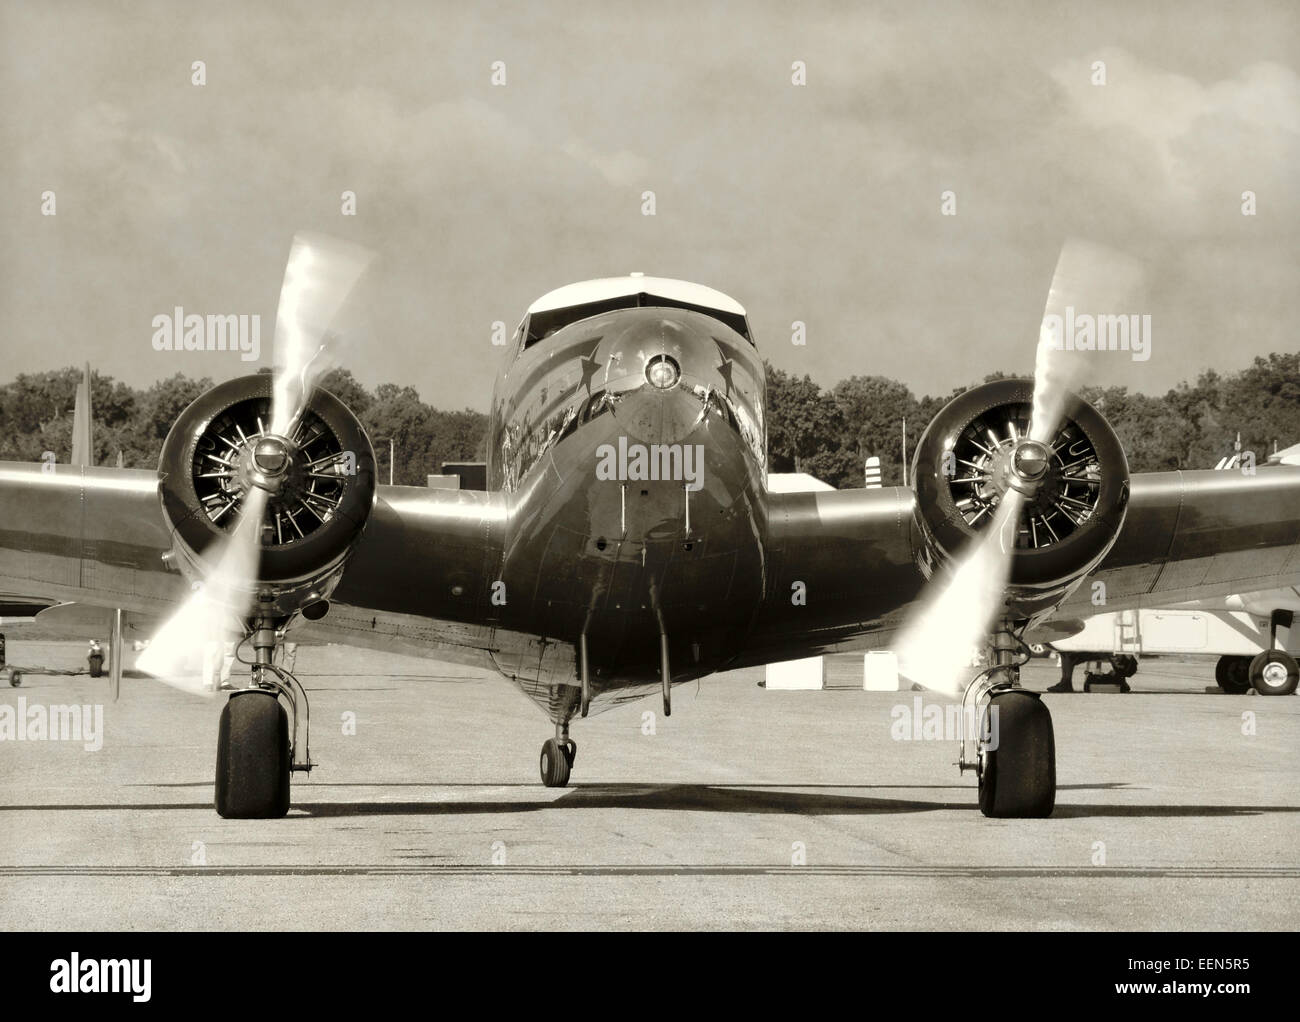 Front view vintage propeller airplane running engines Stock Photo